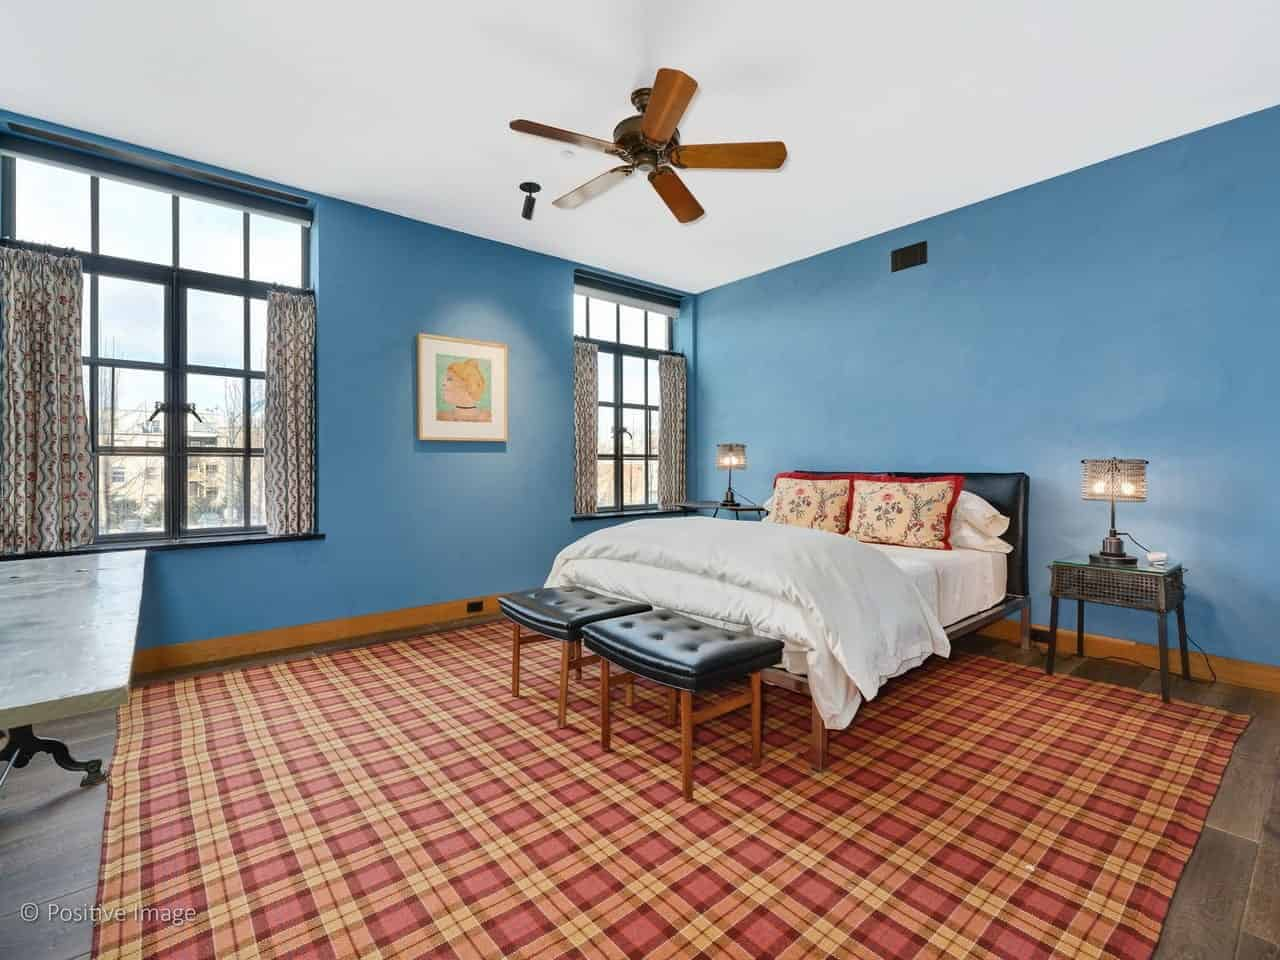 The hardwood flooring is covered with a red area rug that has a plaid pattern to it that provides a nice complex and colorful background for the black leather bed with stainless steel legs flanked with a couple of industrial-style bedside tables with matching table lamps.